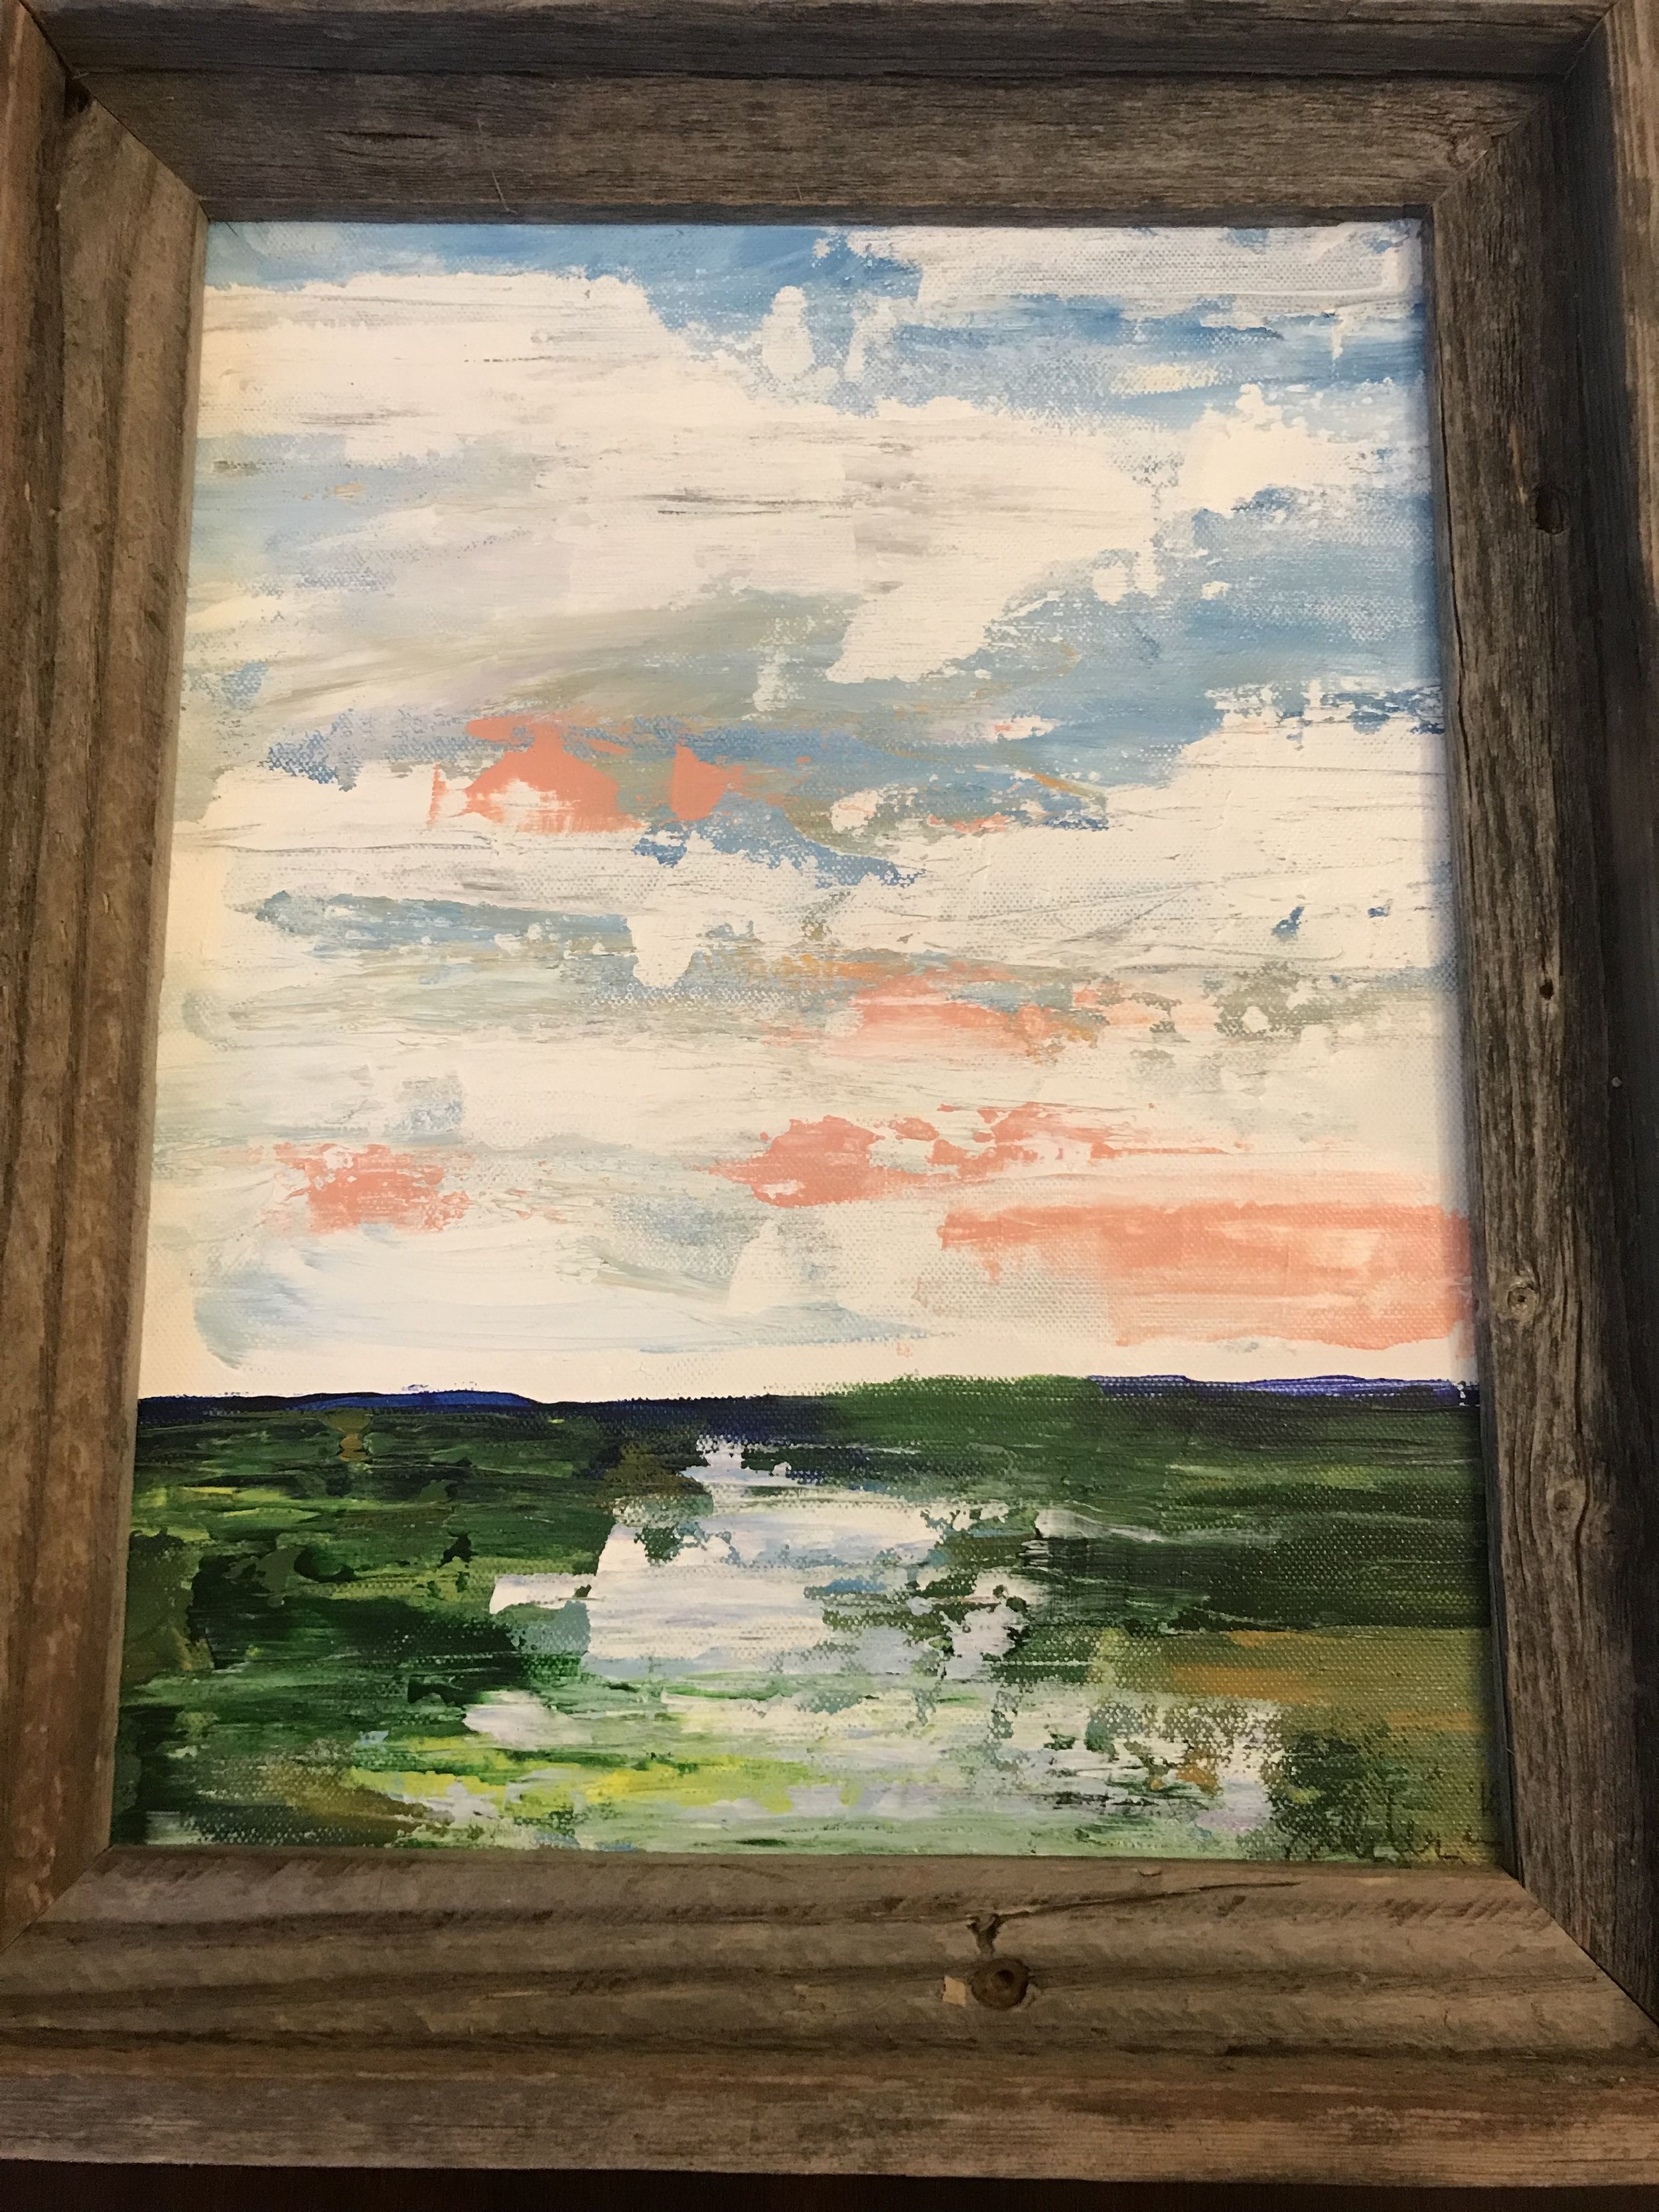 ACRYLIC LANDSCAPE PAINTING   This beautiful 14x17 weathered-wood framed acrylic on canvas landscape painting is sure to compliment any home.  DONOR: Sally League VALUE: $85